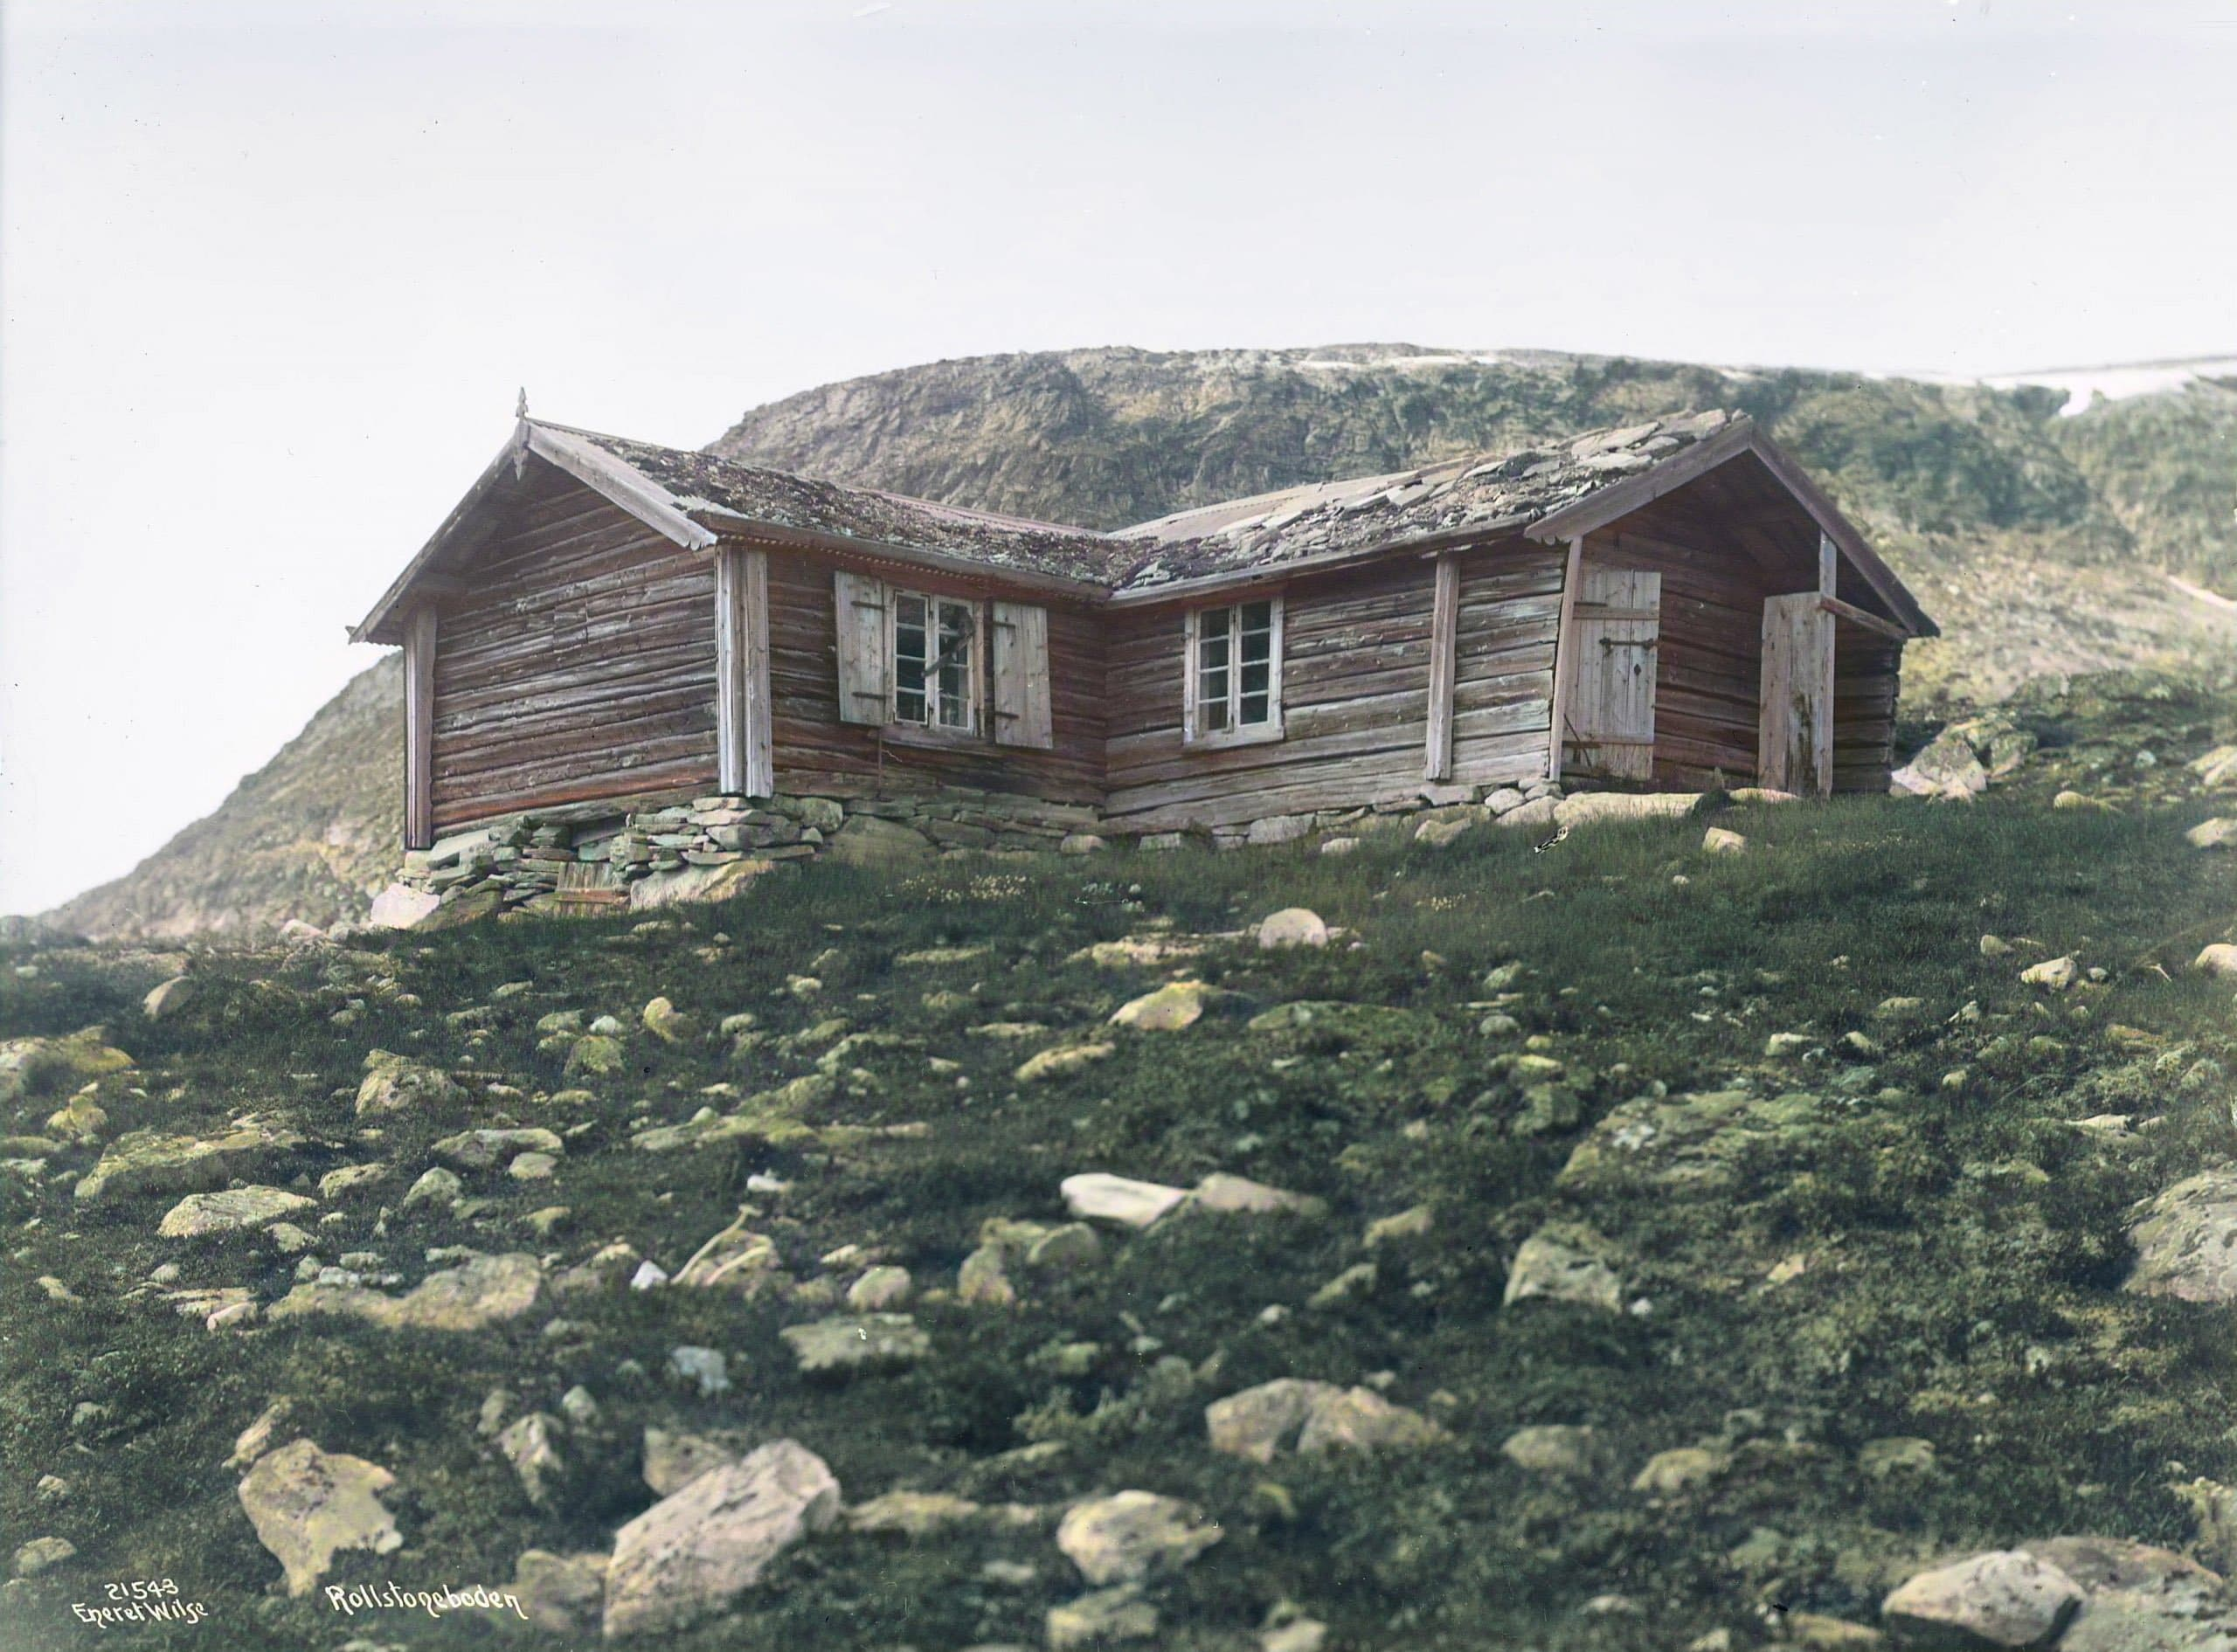 The mountain cabin Rollstadbu - at Dovre, Oppland, Norway - in 1920. | Photo: Anders Beer Wilse - Norsk Folkemuseum DeOldify cc pdm.